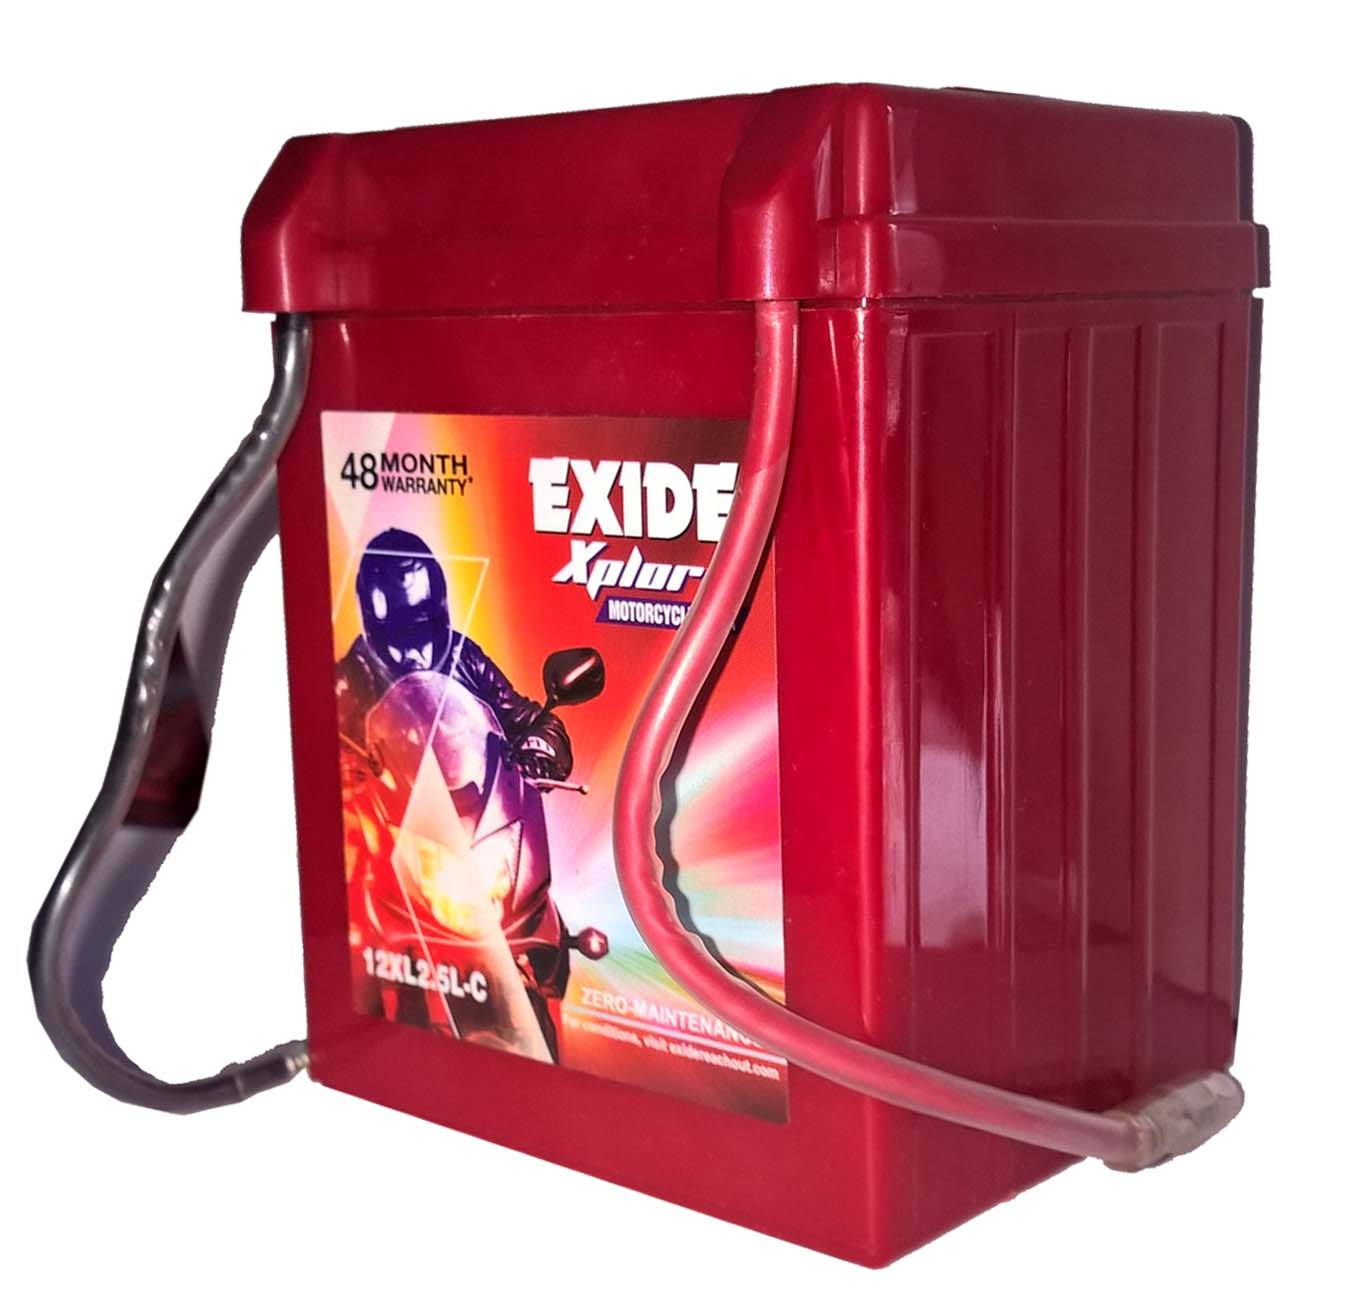 Exide xplore buy splendor cd deluxe yamaha without self BATTERY sealed XL2.5LC